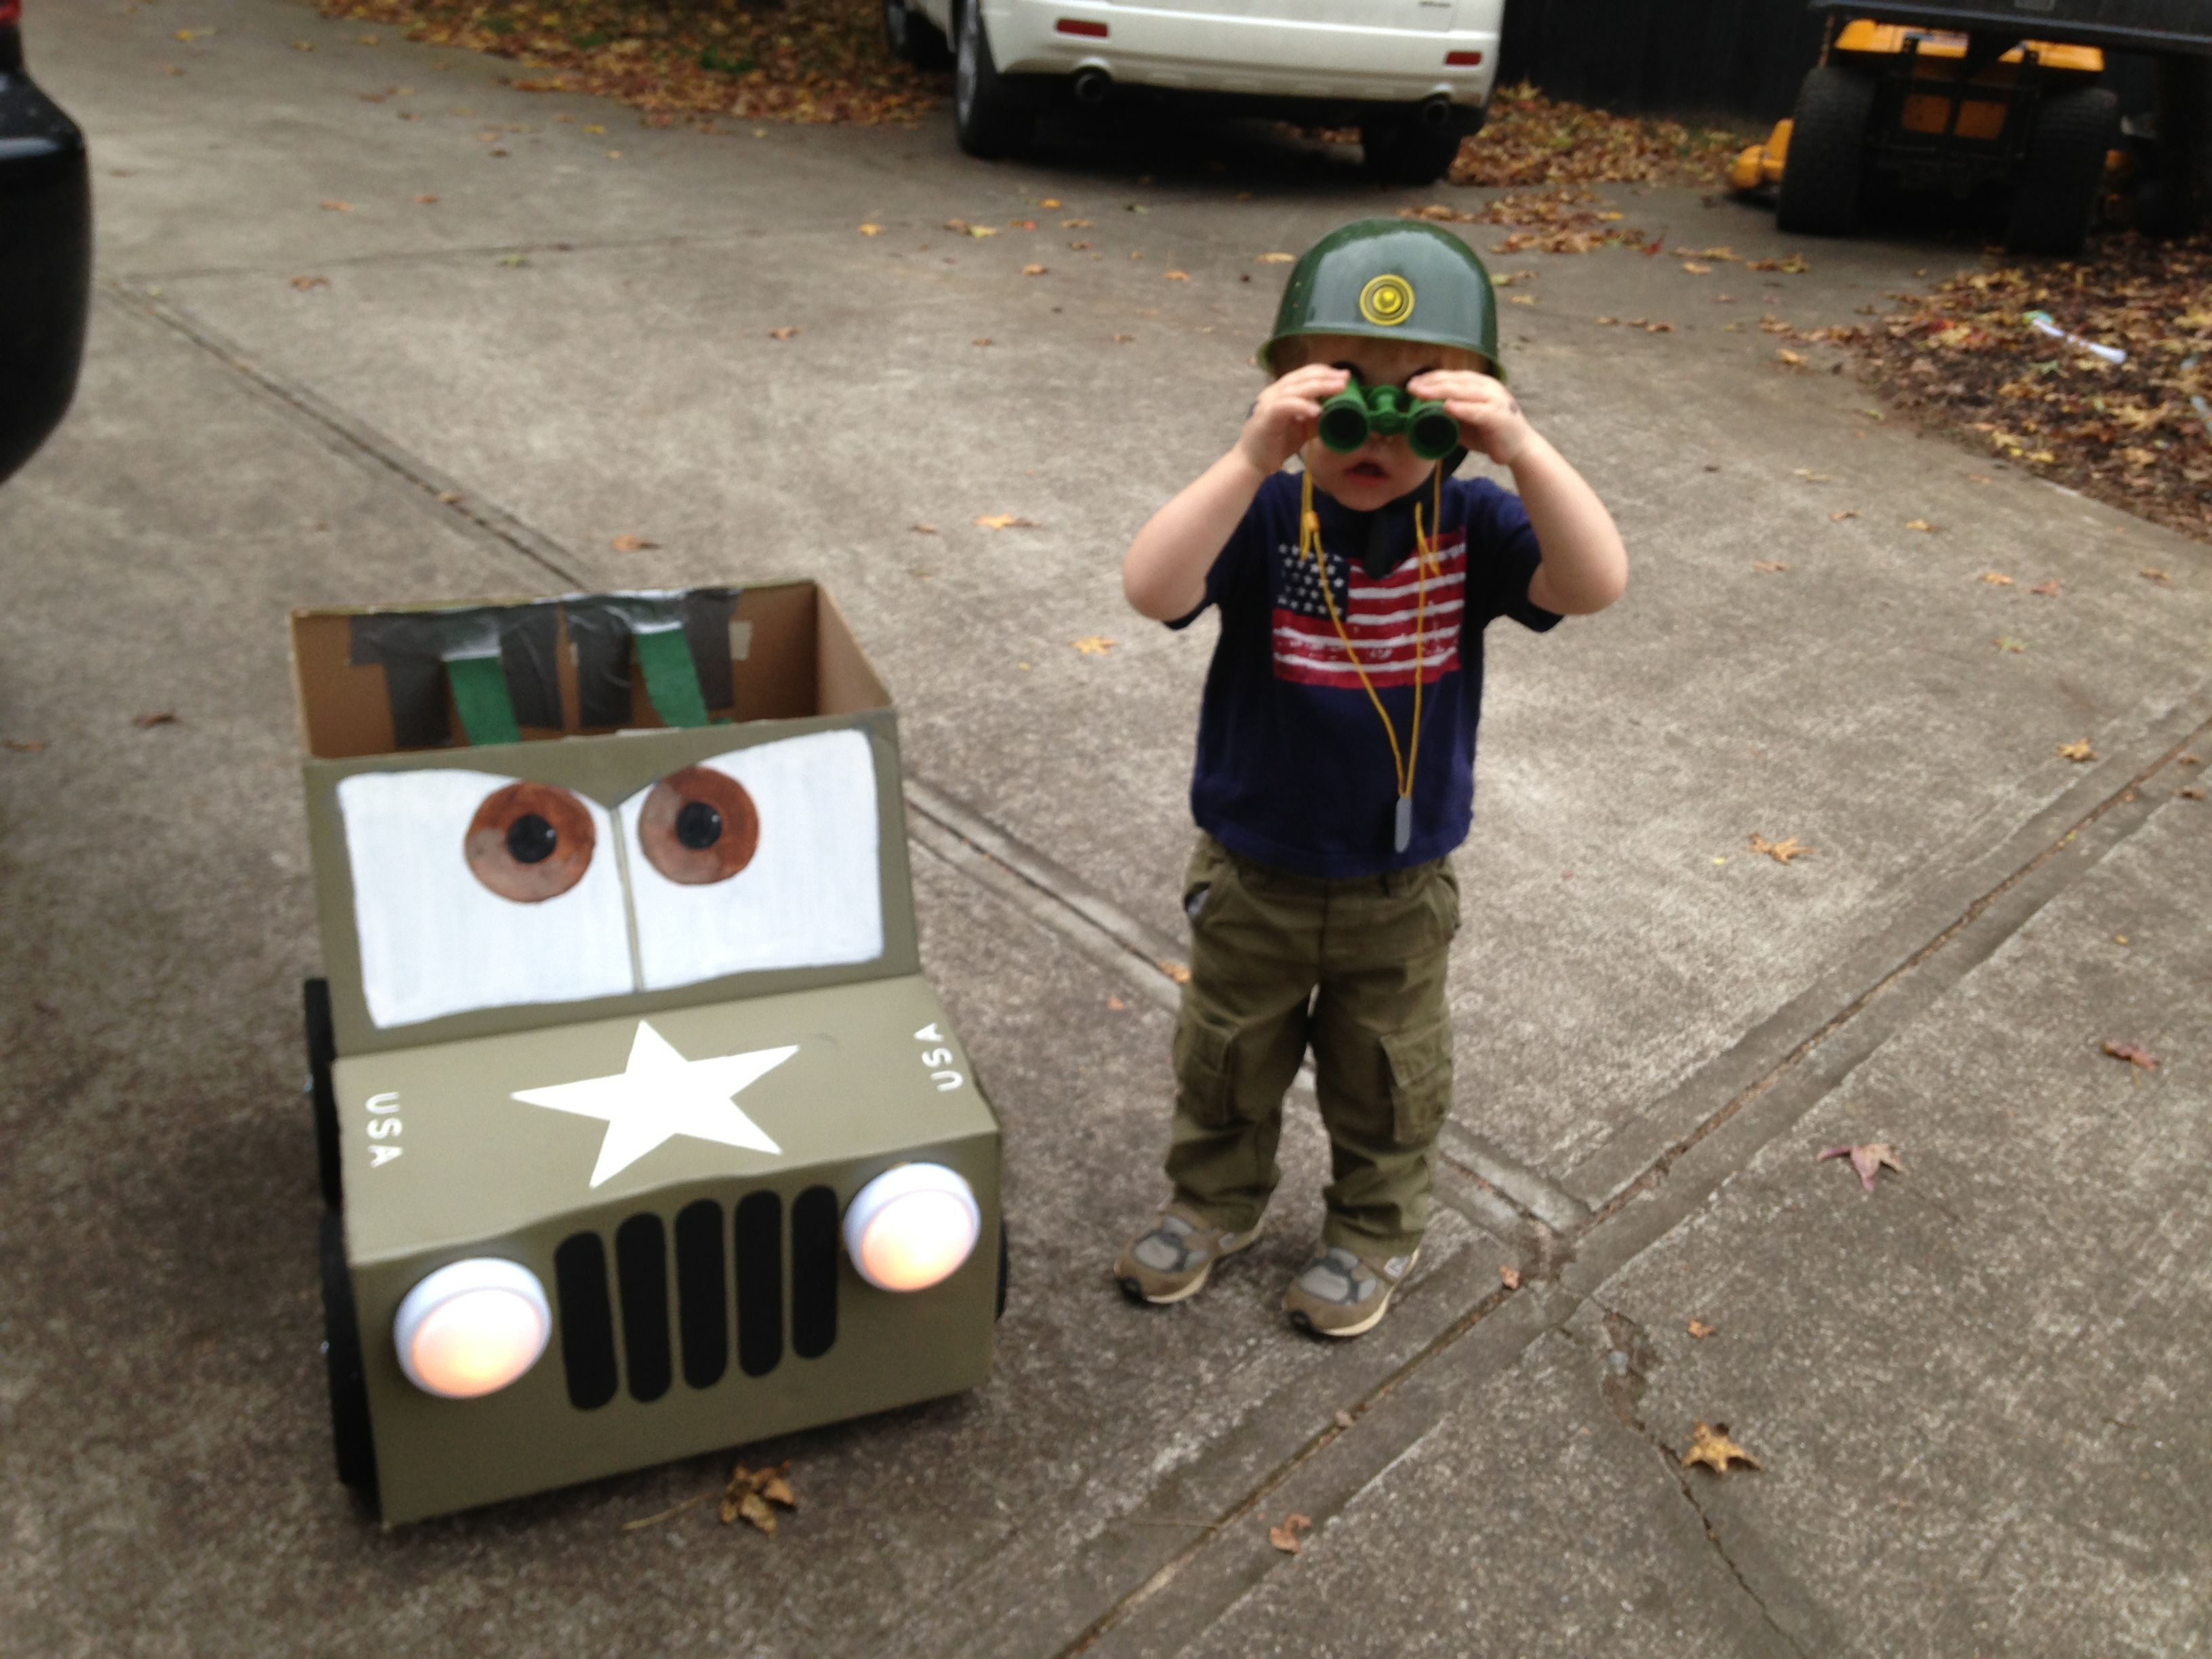 Sarge from Disneyu0027s Cars movie...DIY Halloween costume for my little guy! & Sarge from Disneyu0027s Cars movie...DIY Halloween costume for my little ...